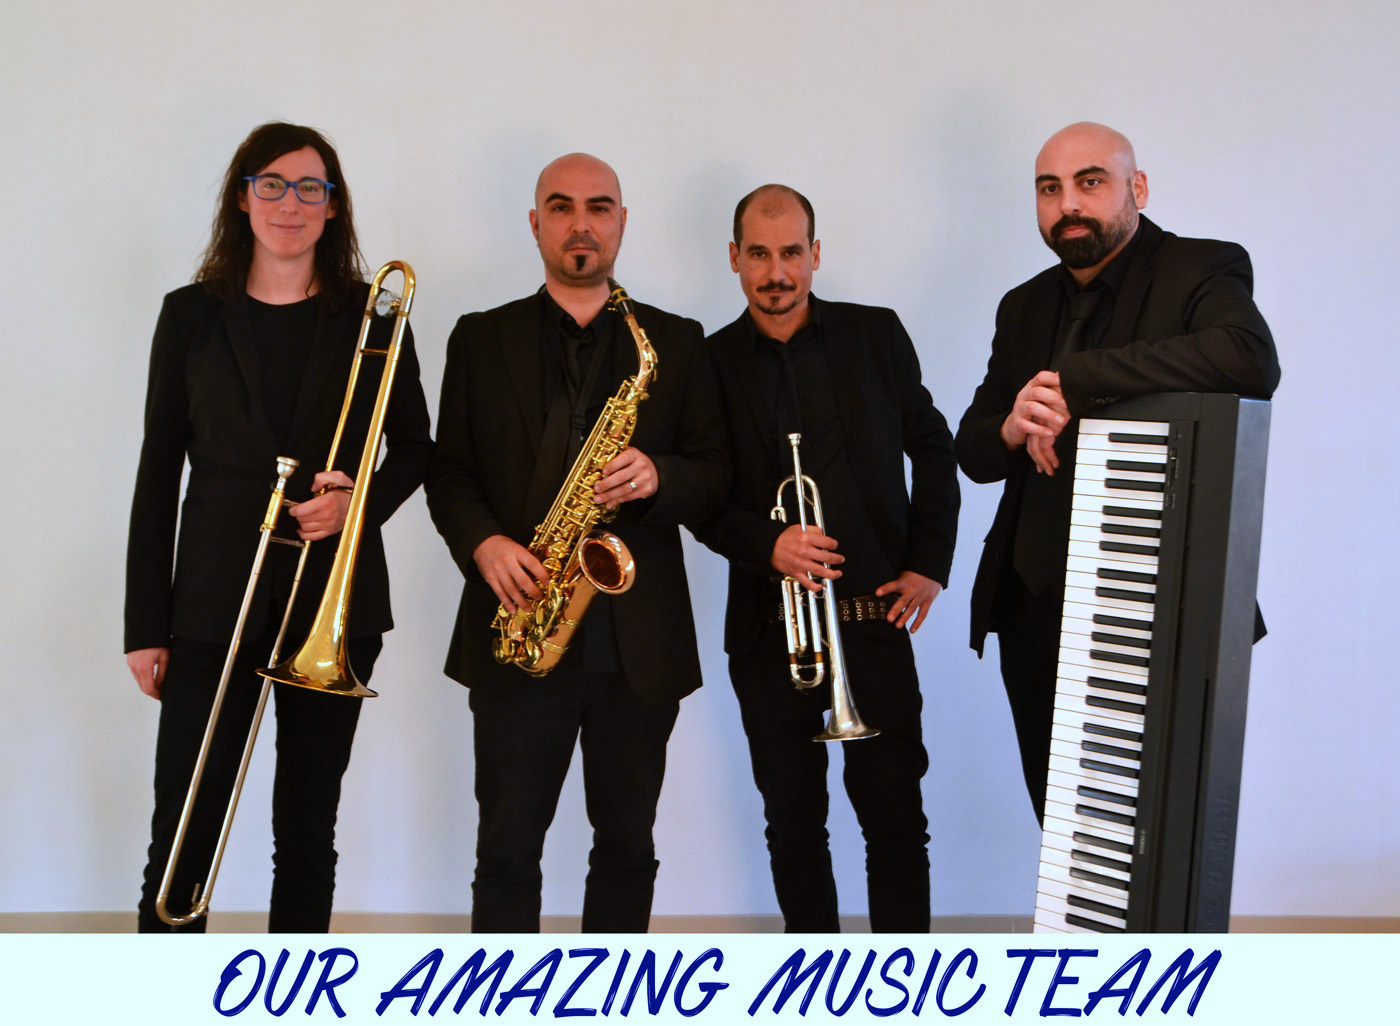 Music-Team-Hamelin-laie2